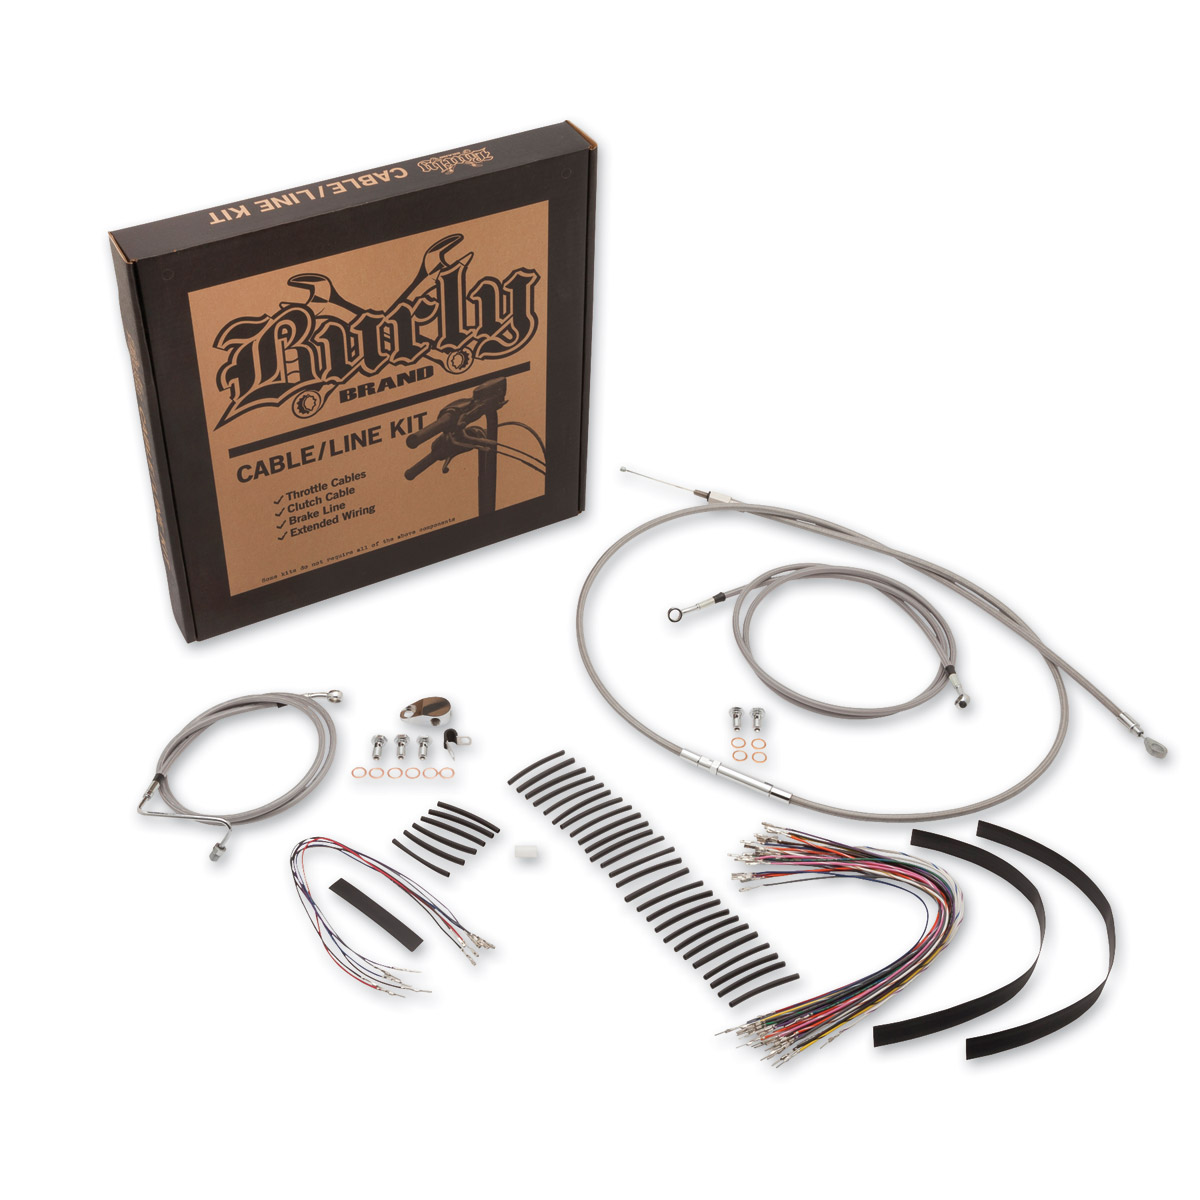 Burly Brand 14″ Braided Stainless Ape Hanger Cable/Line/Wiring Kit for Models w/ ABS